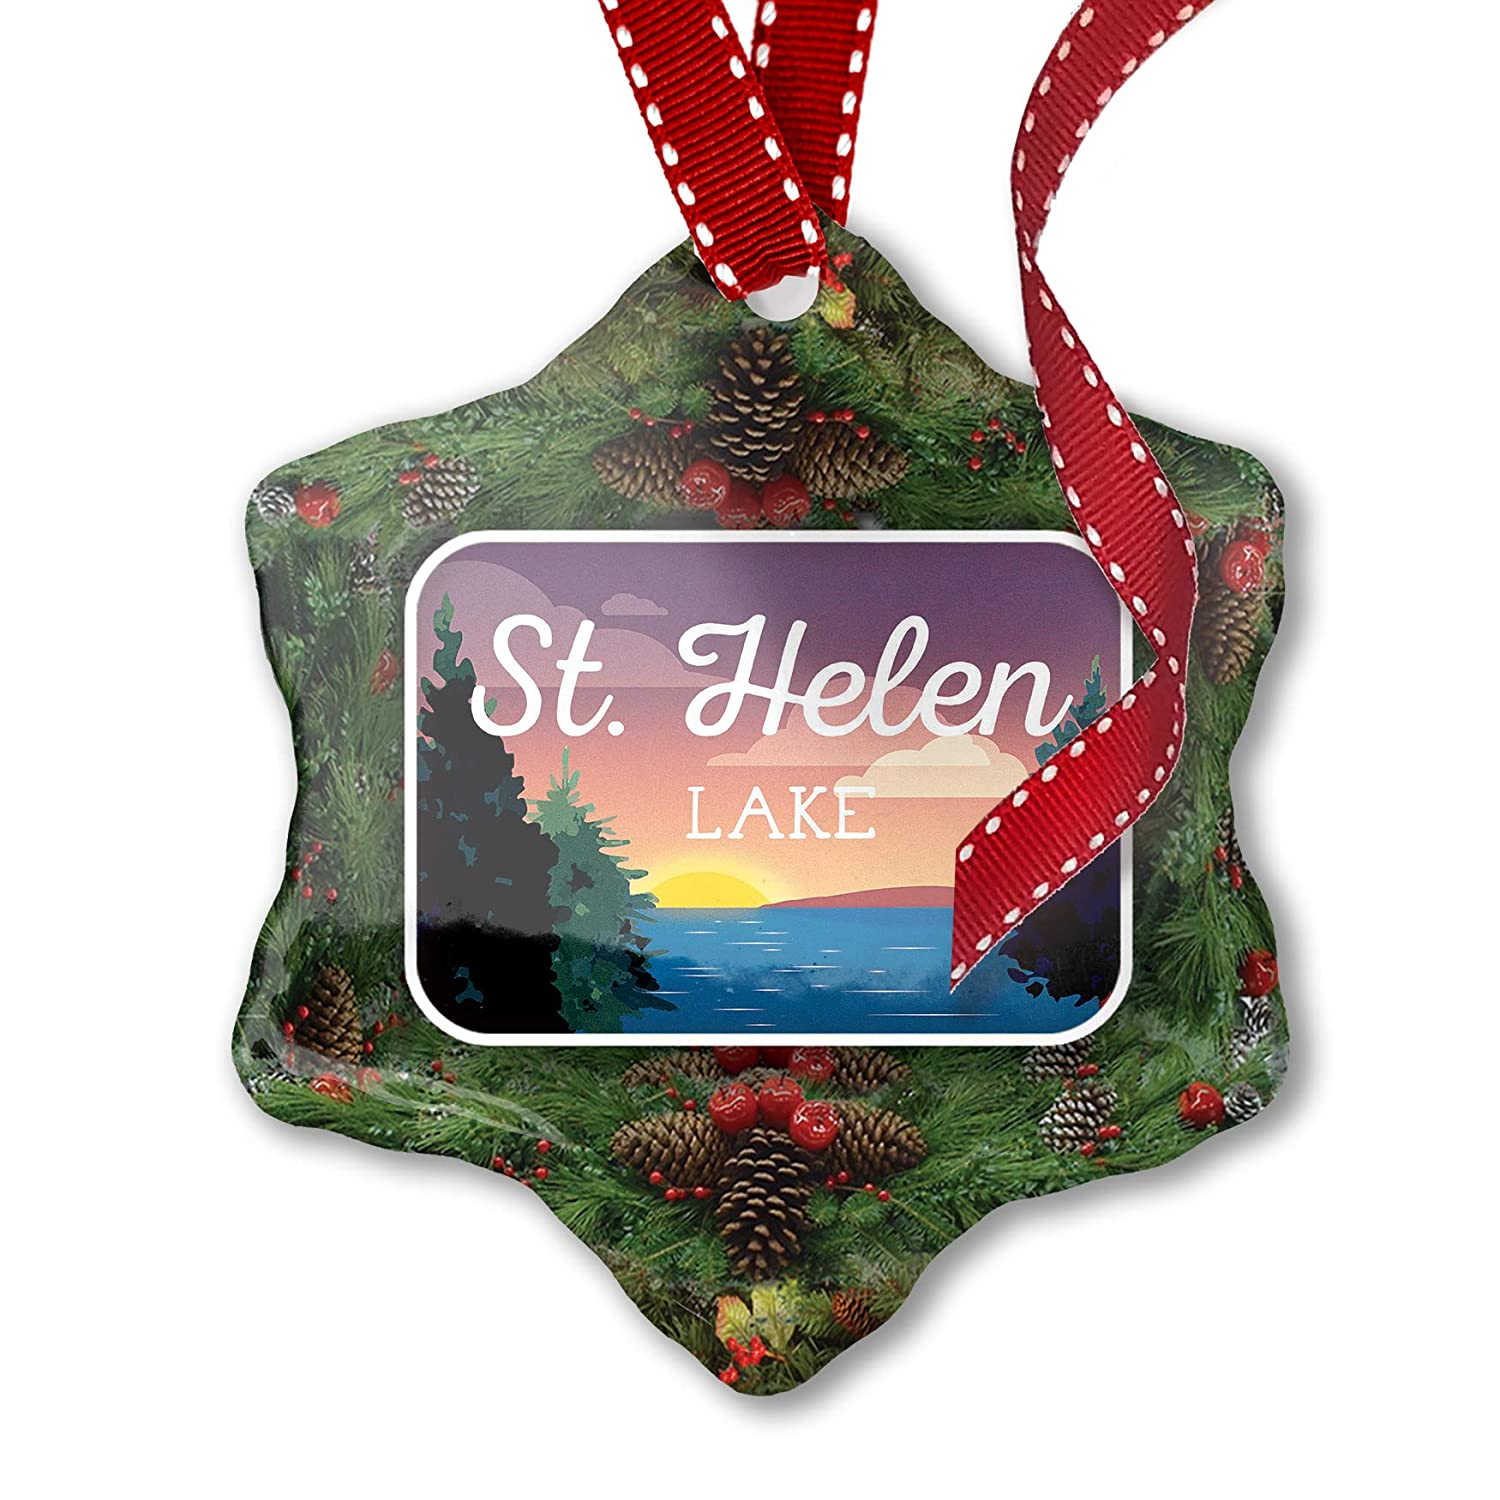 Helen Ga Christmas.Amazon Com Neonblond Christmas Ornament Lake Retro Design